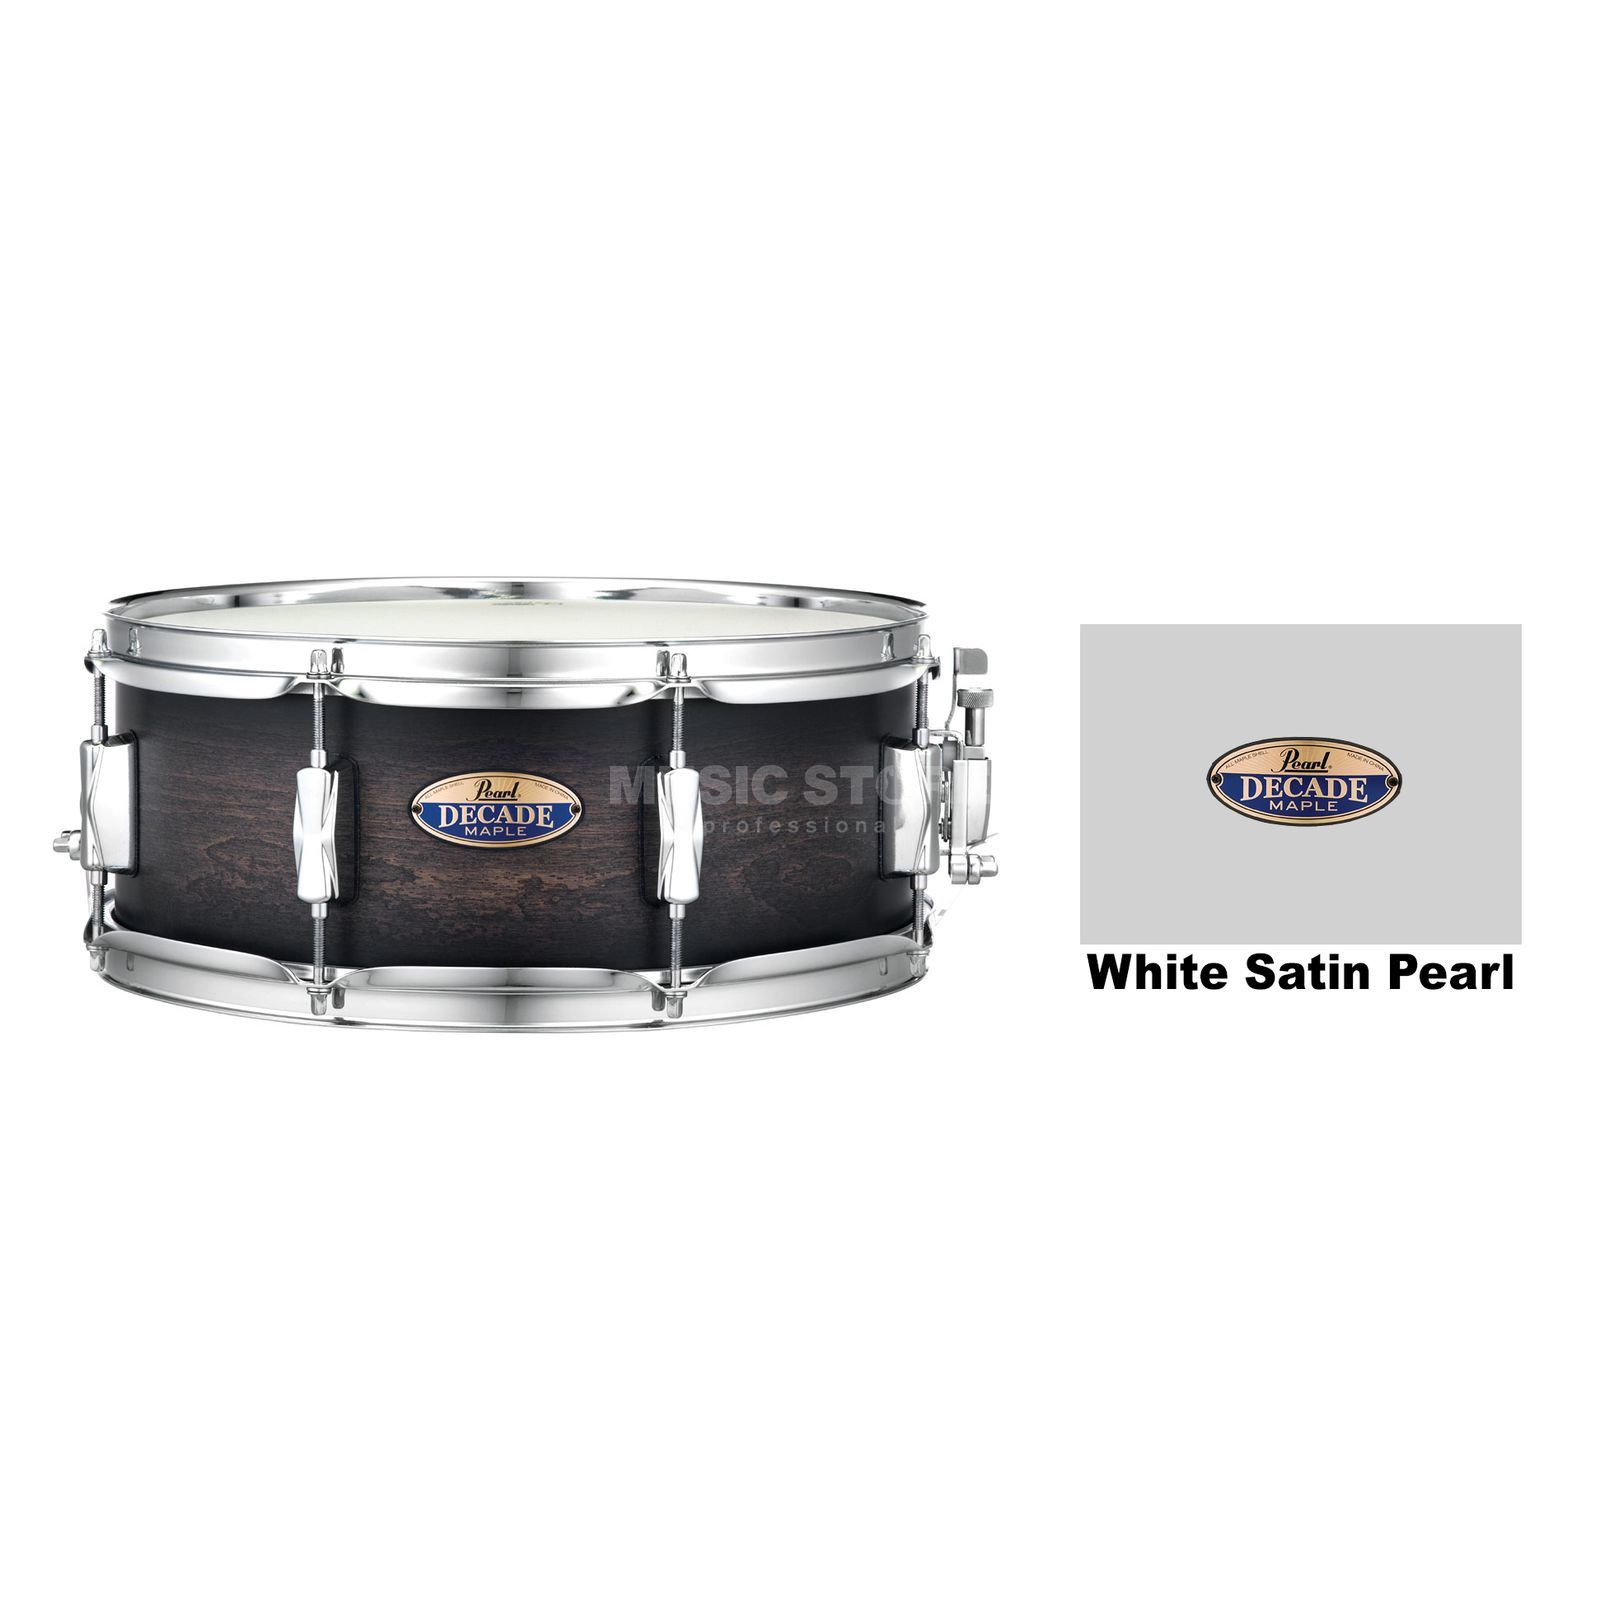 "Pearl Decade Maple Snare 14""x5,5"", White Satin Pearl #229 Produktbillede"